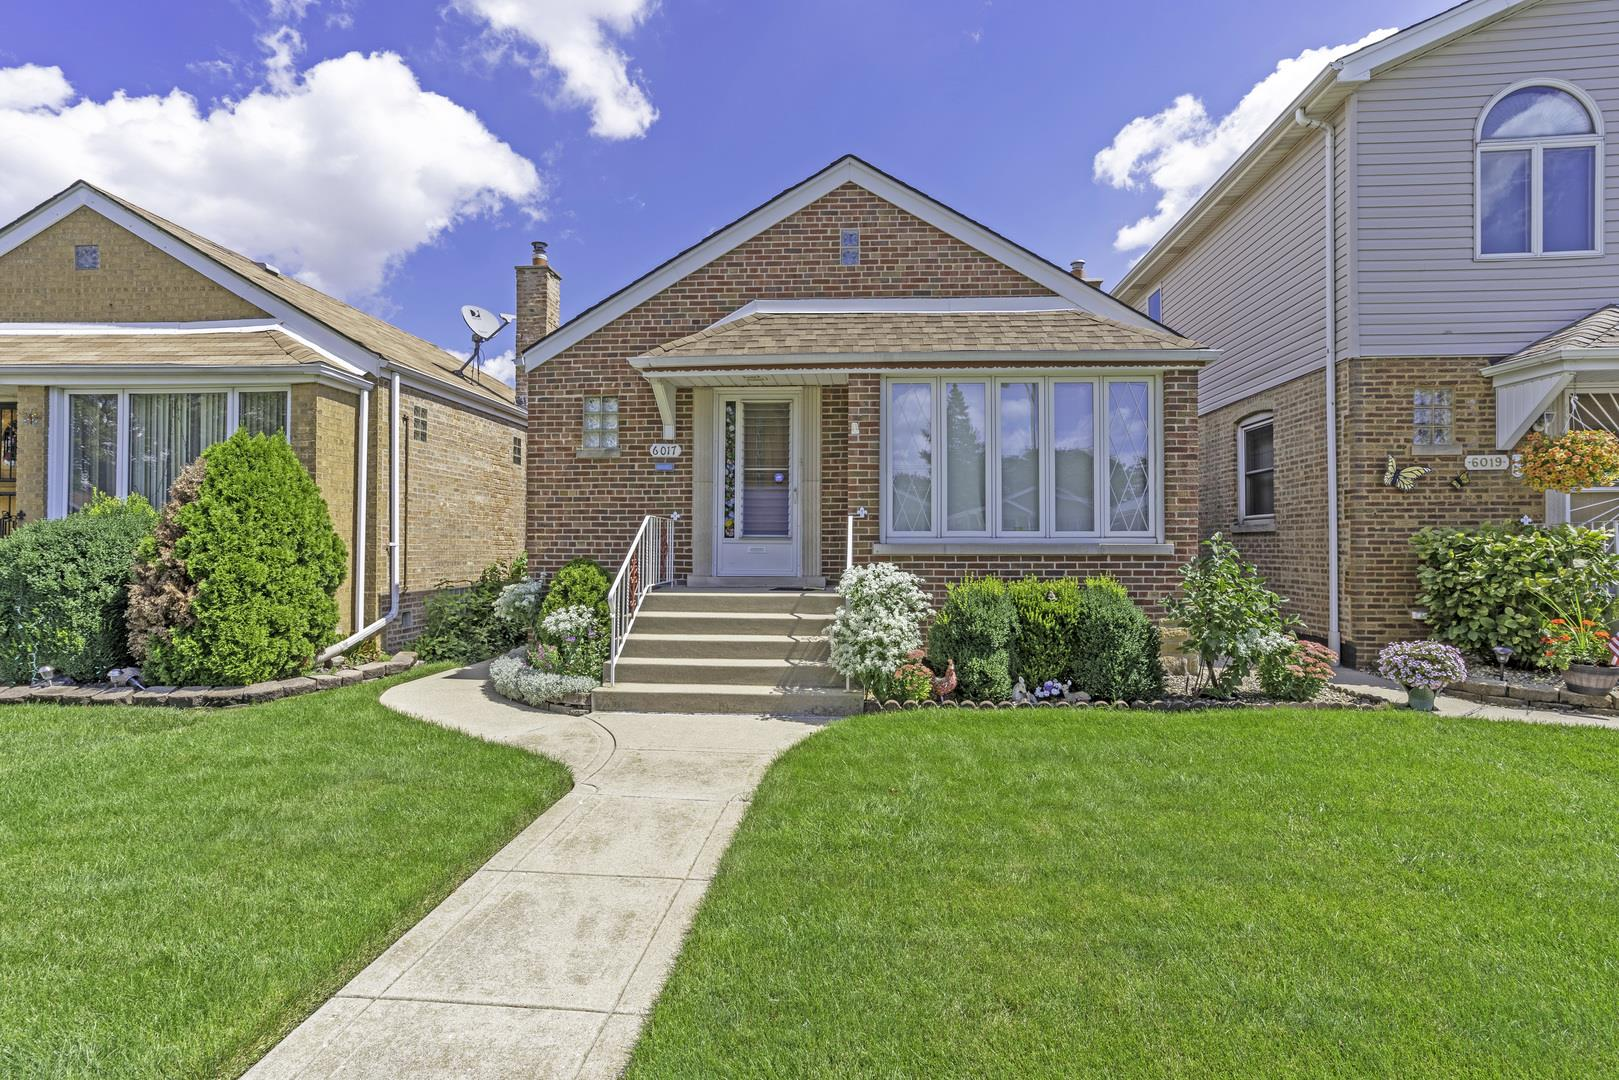 6017 S Mcvicker Avenue, Chicago, IL 60638 - #: 10856313